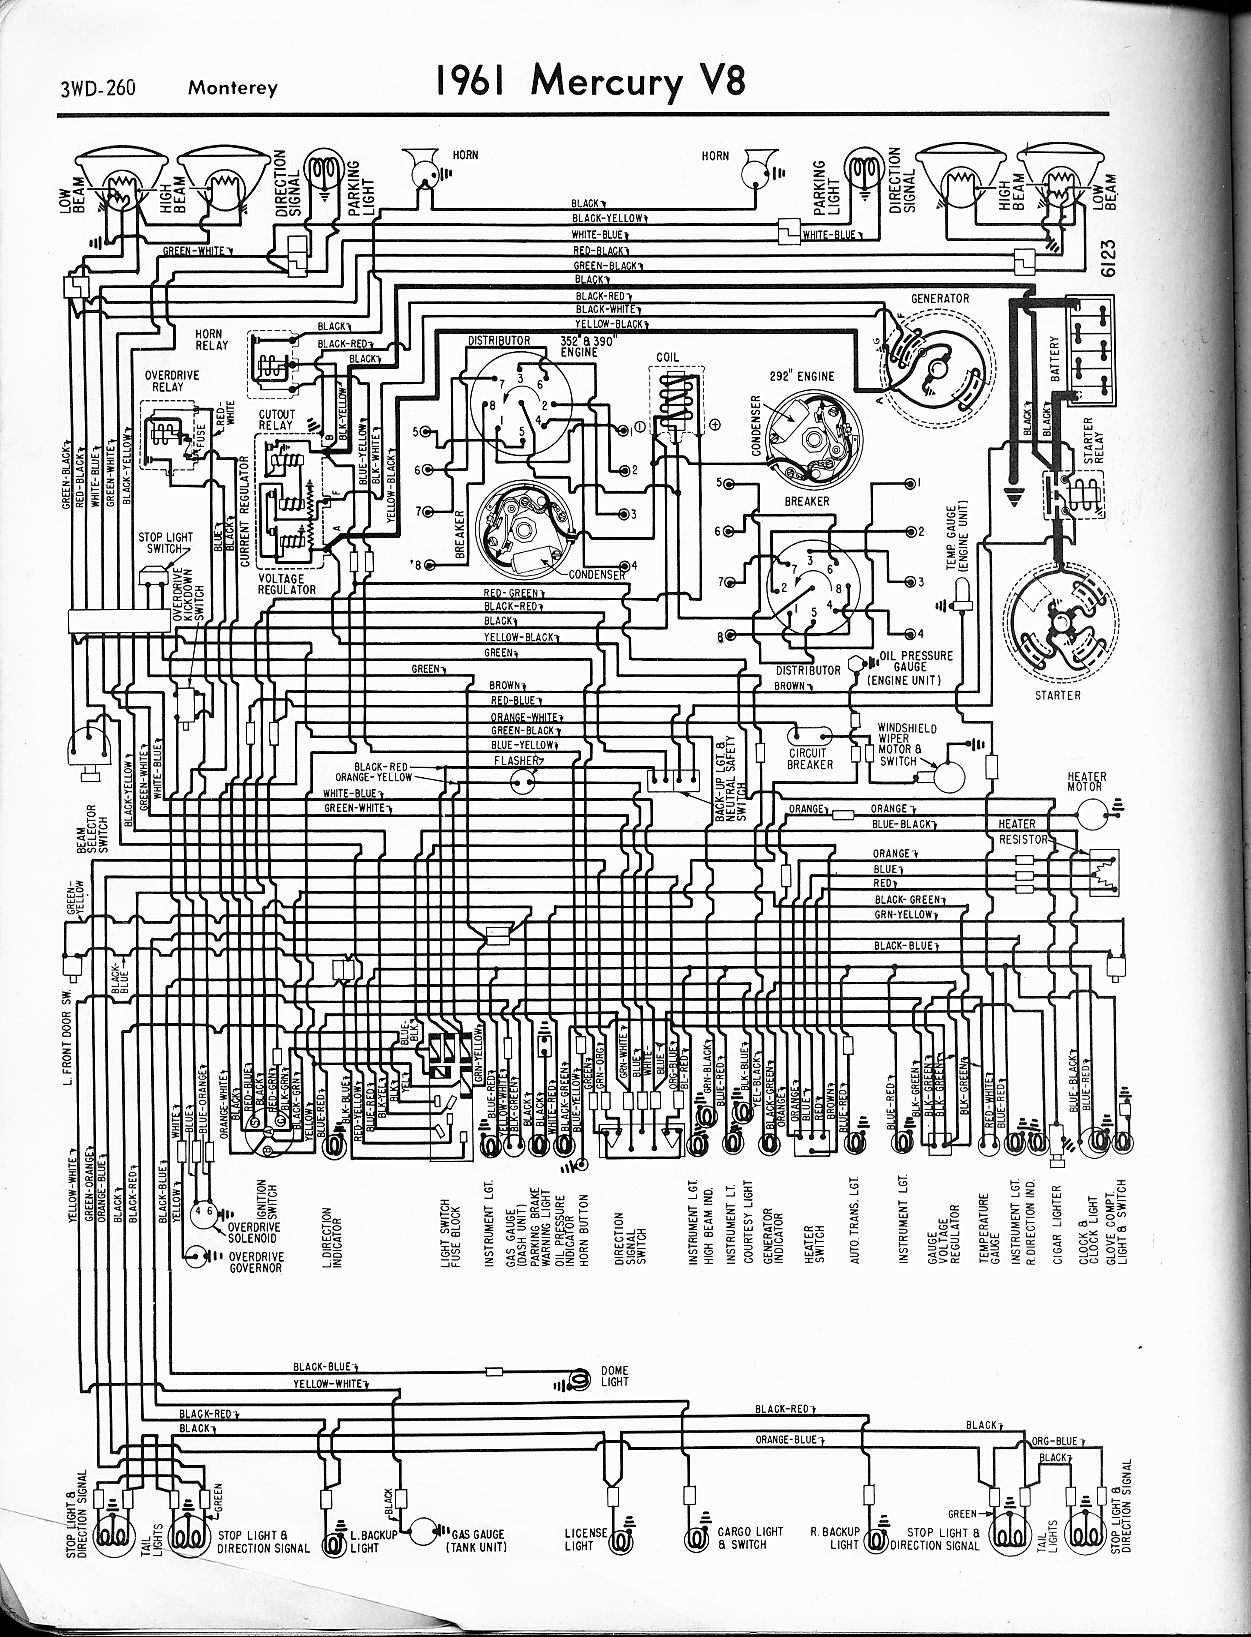 1955 mercury wiring diagram residential electrical symbols u2022 rh bookmyad co 1974 Mercury Comet Pictures Desktop 1964 Mercury Comet Caliente